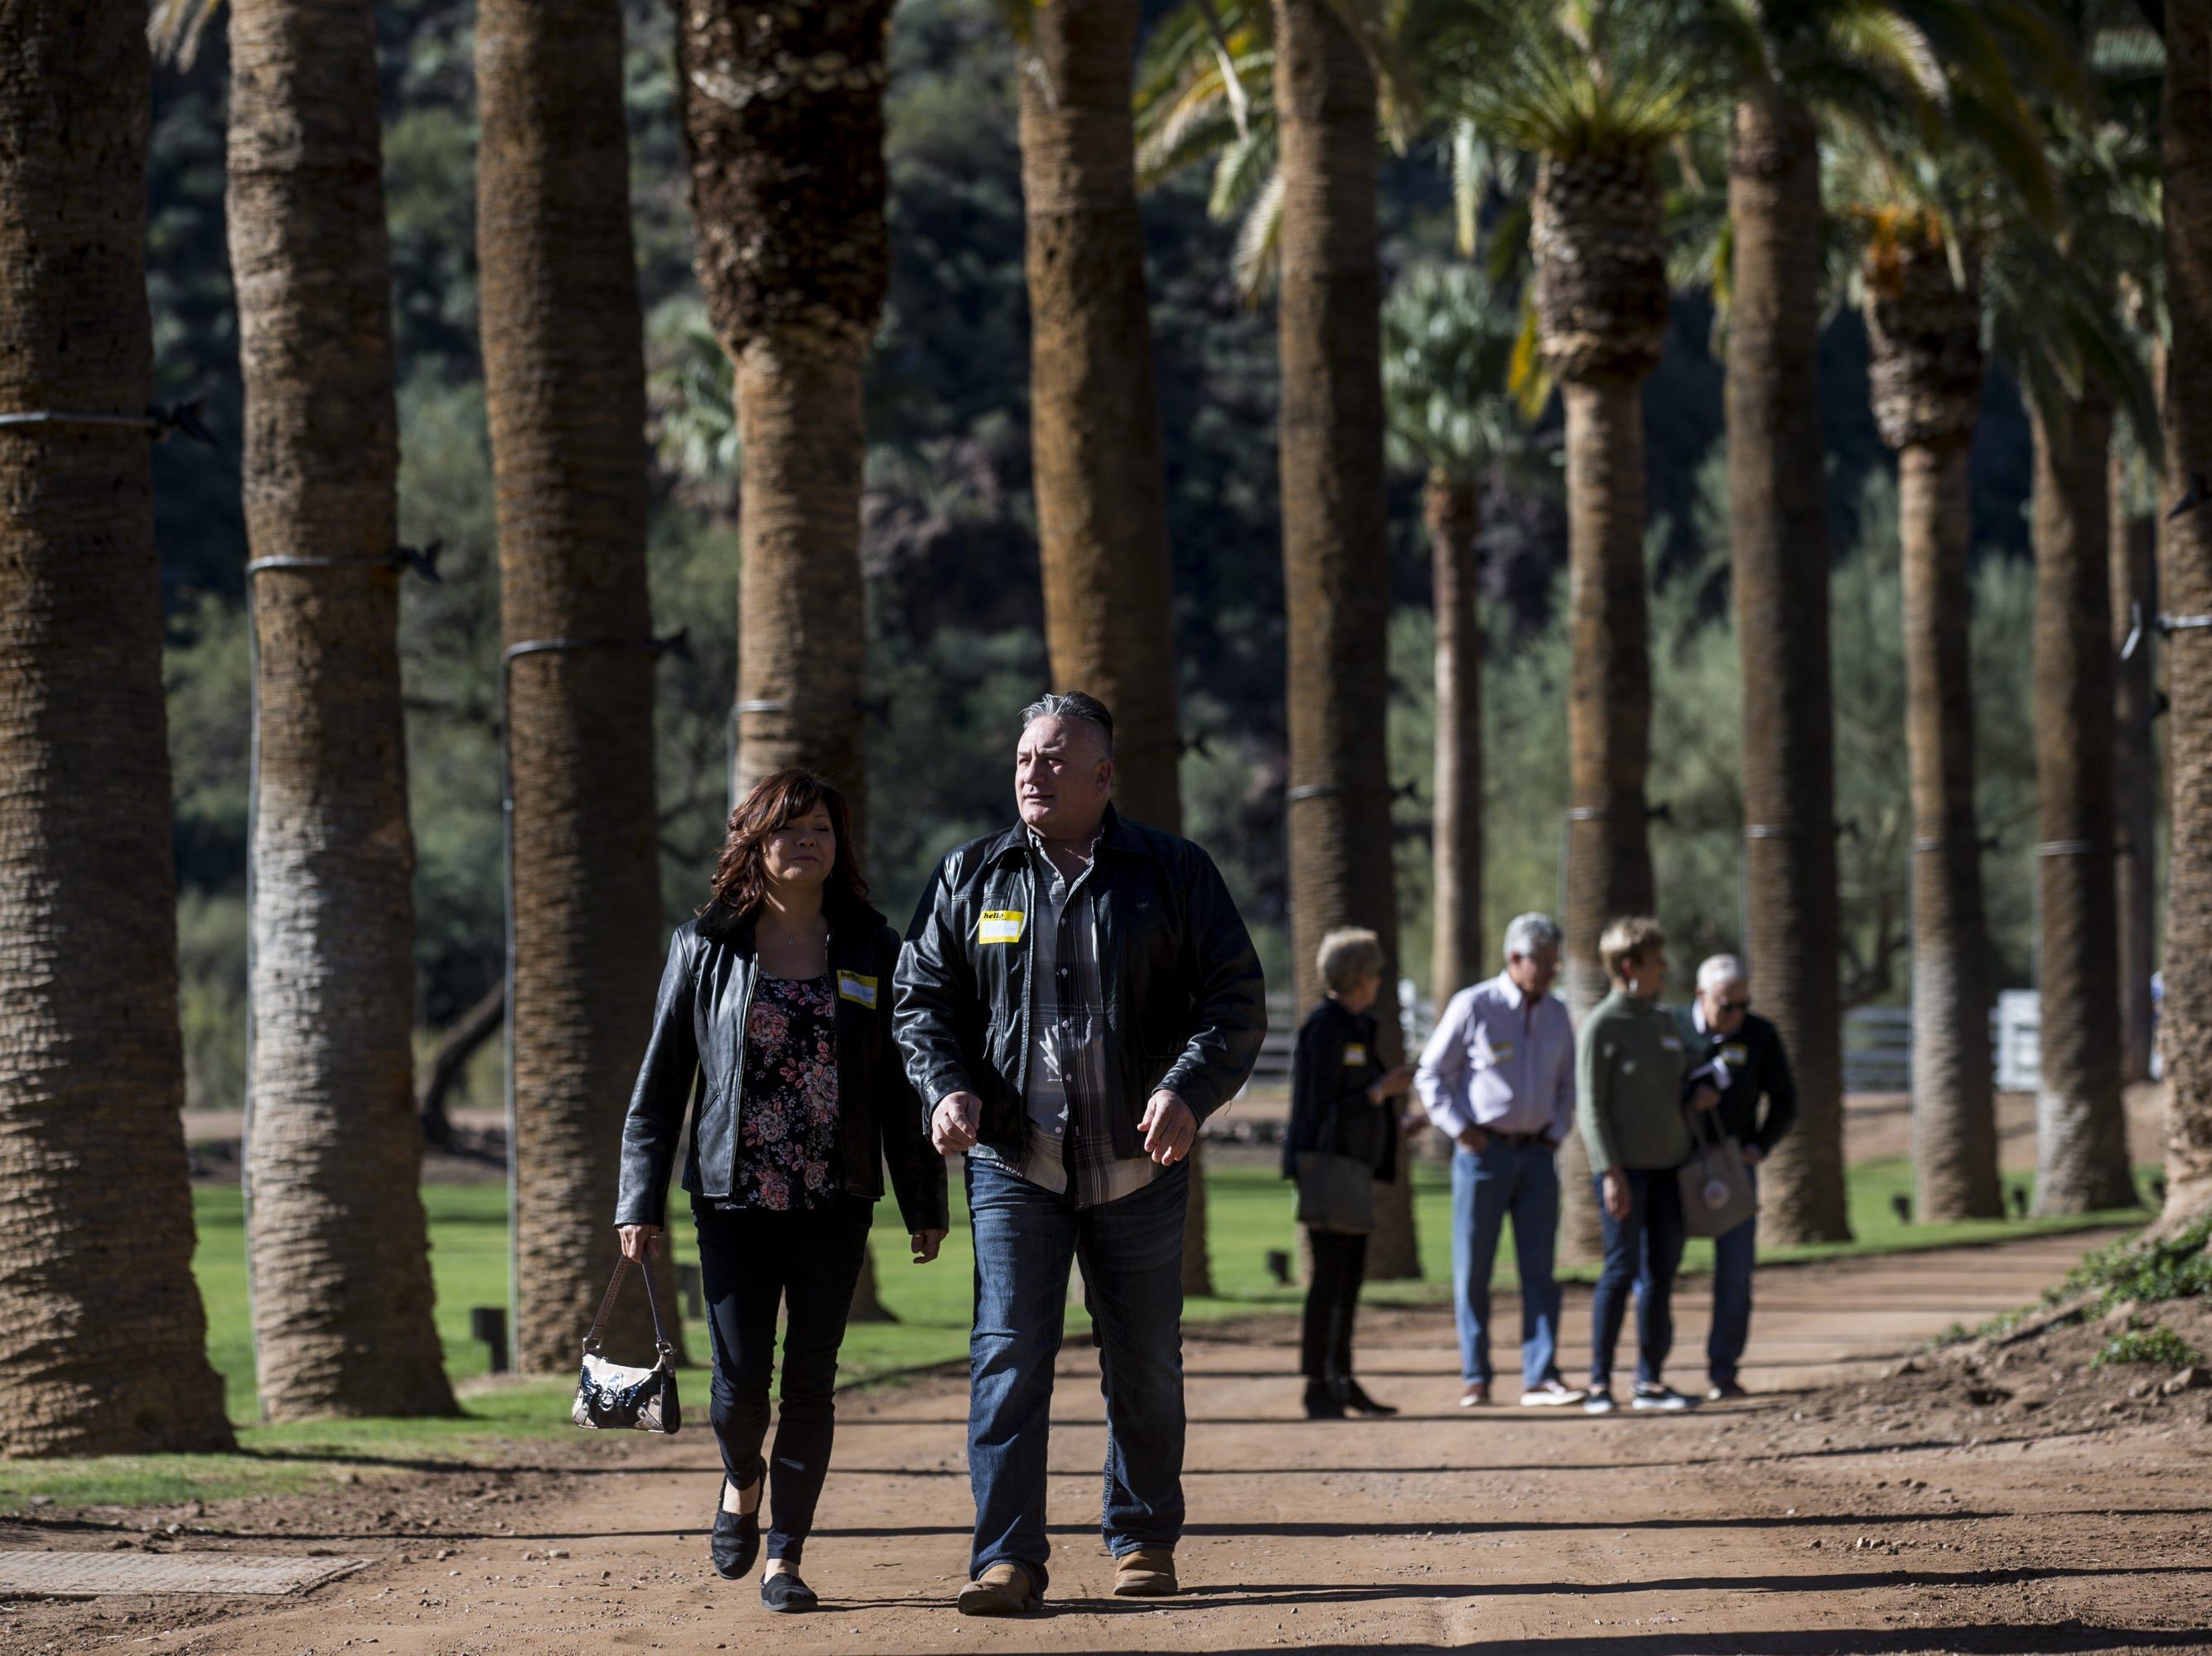 People arrive for a private preview of the newly renovated Castle Hot Springs resort on Saturday, Dec. 8, 2018, in Morristown, Ariz. It has been 50 years since the resort has hosted any guests.